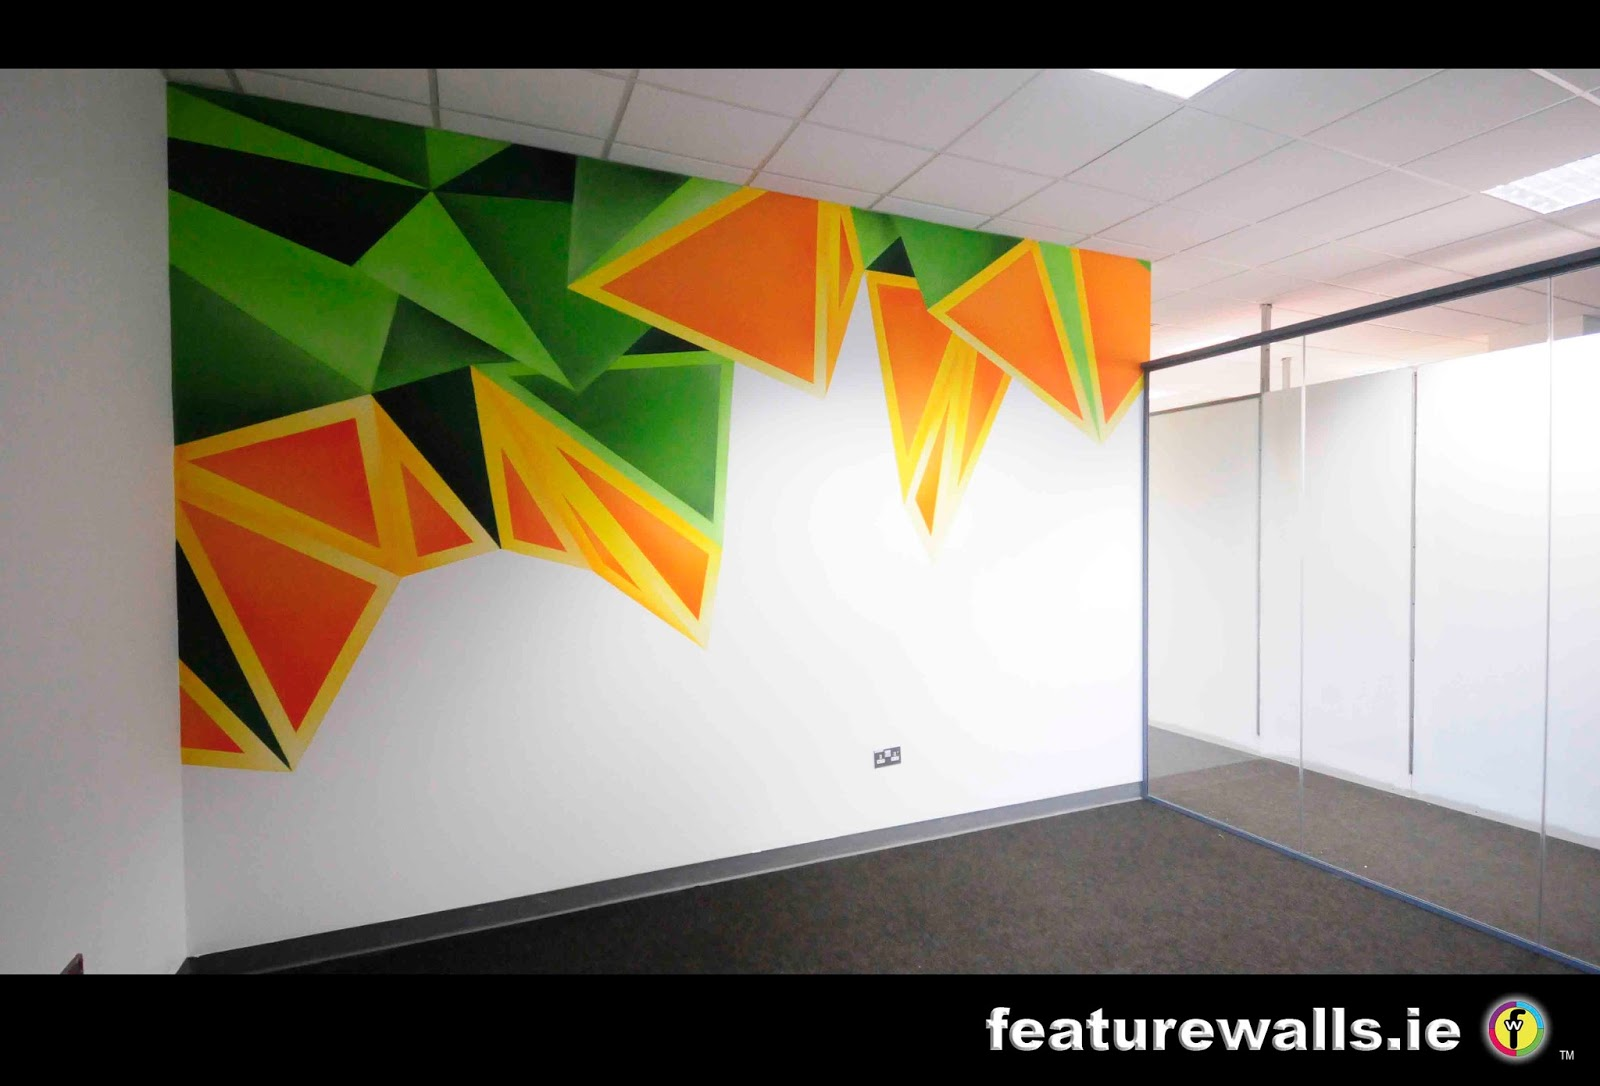 Mural painting professionals featurewalls for Corporate mural